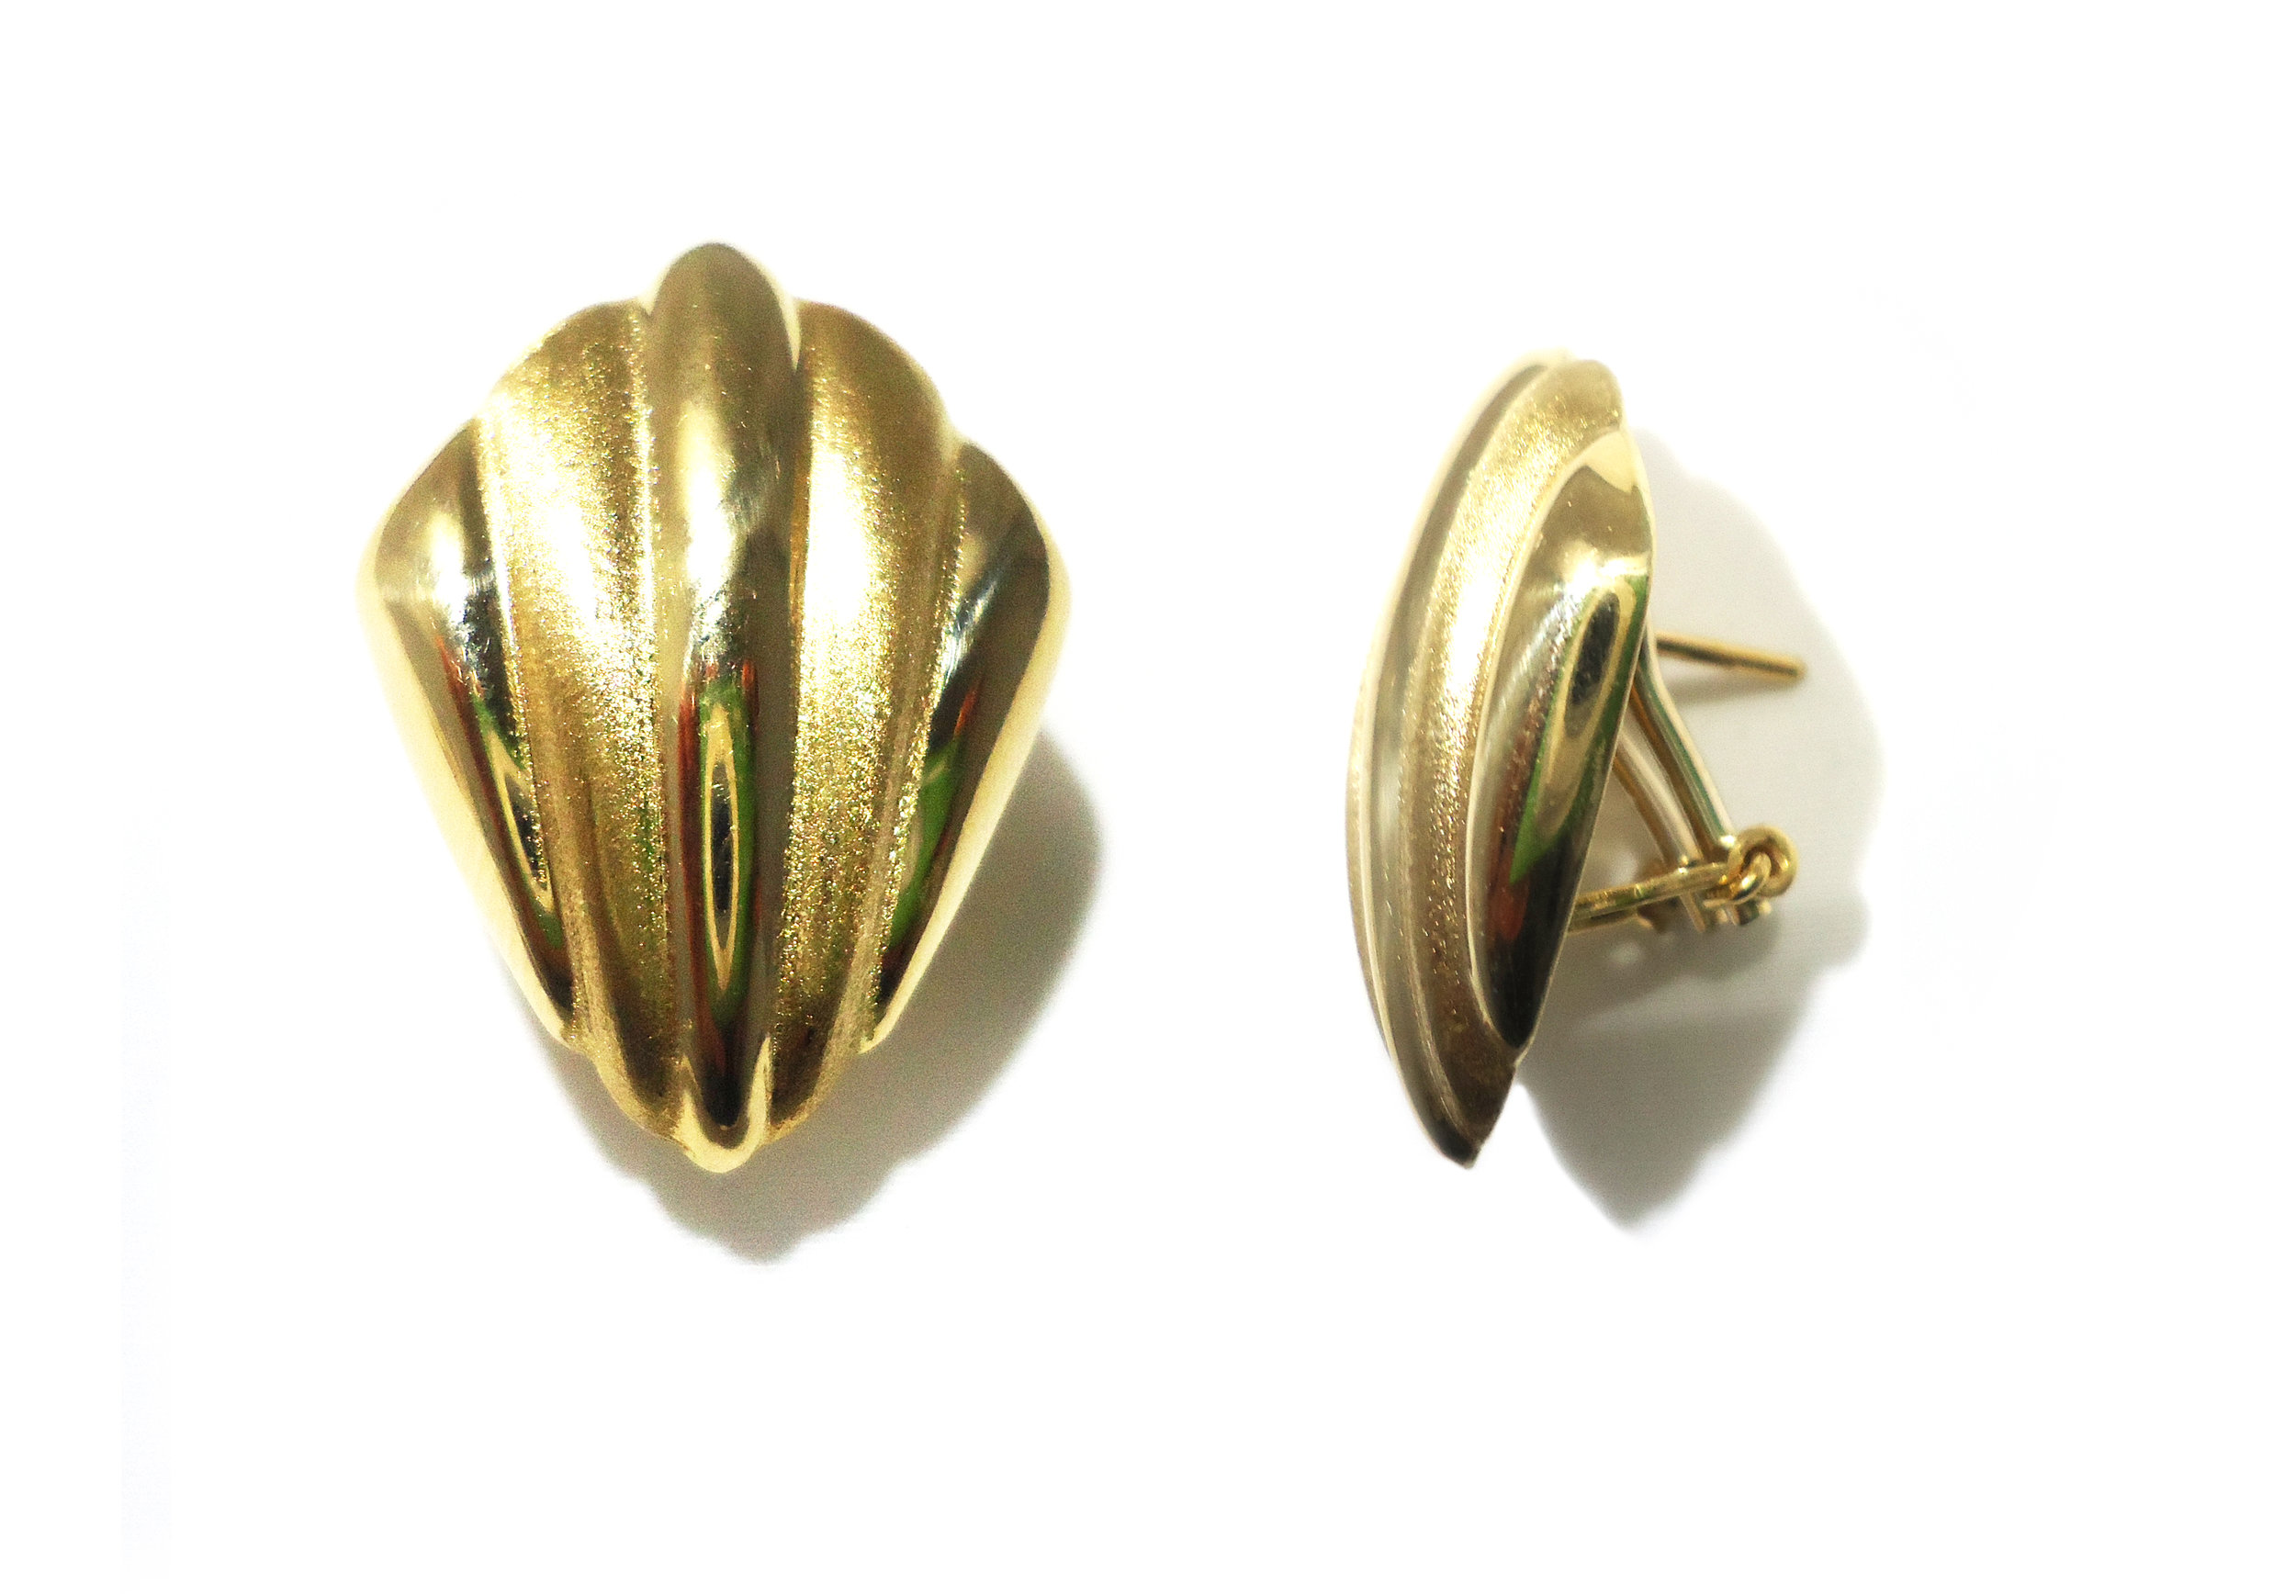 Shell style gold earrings!